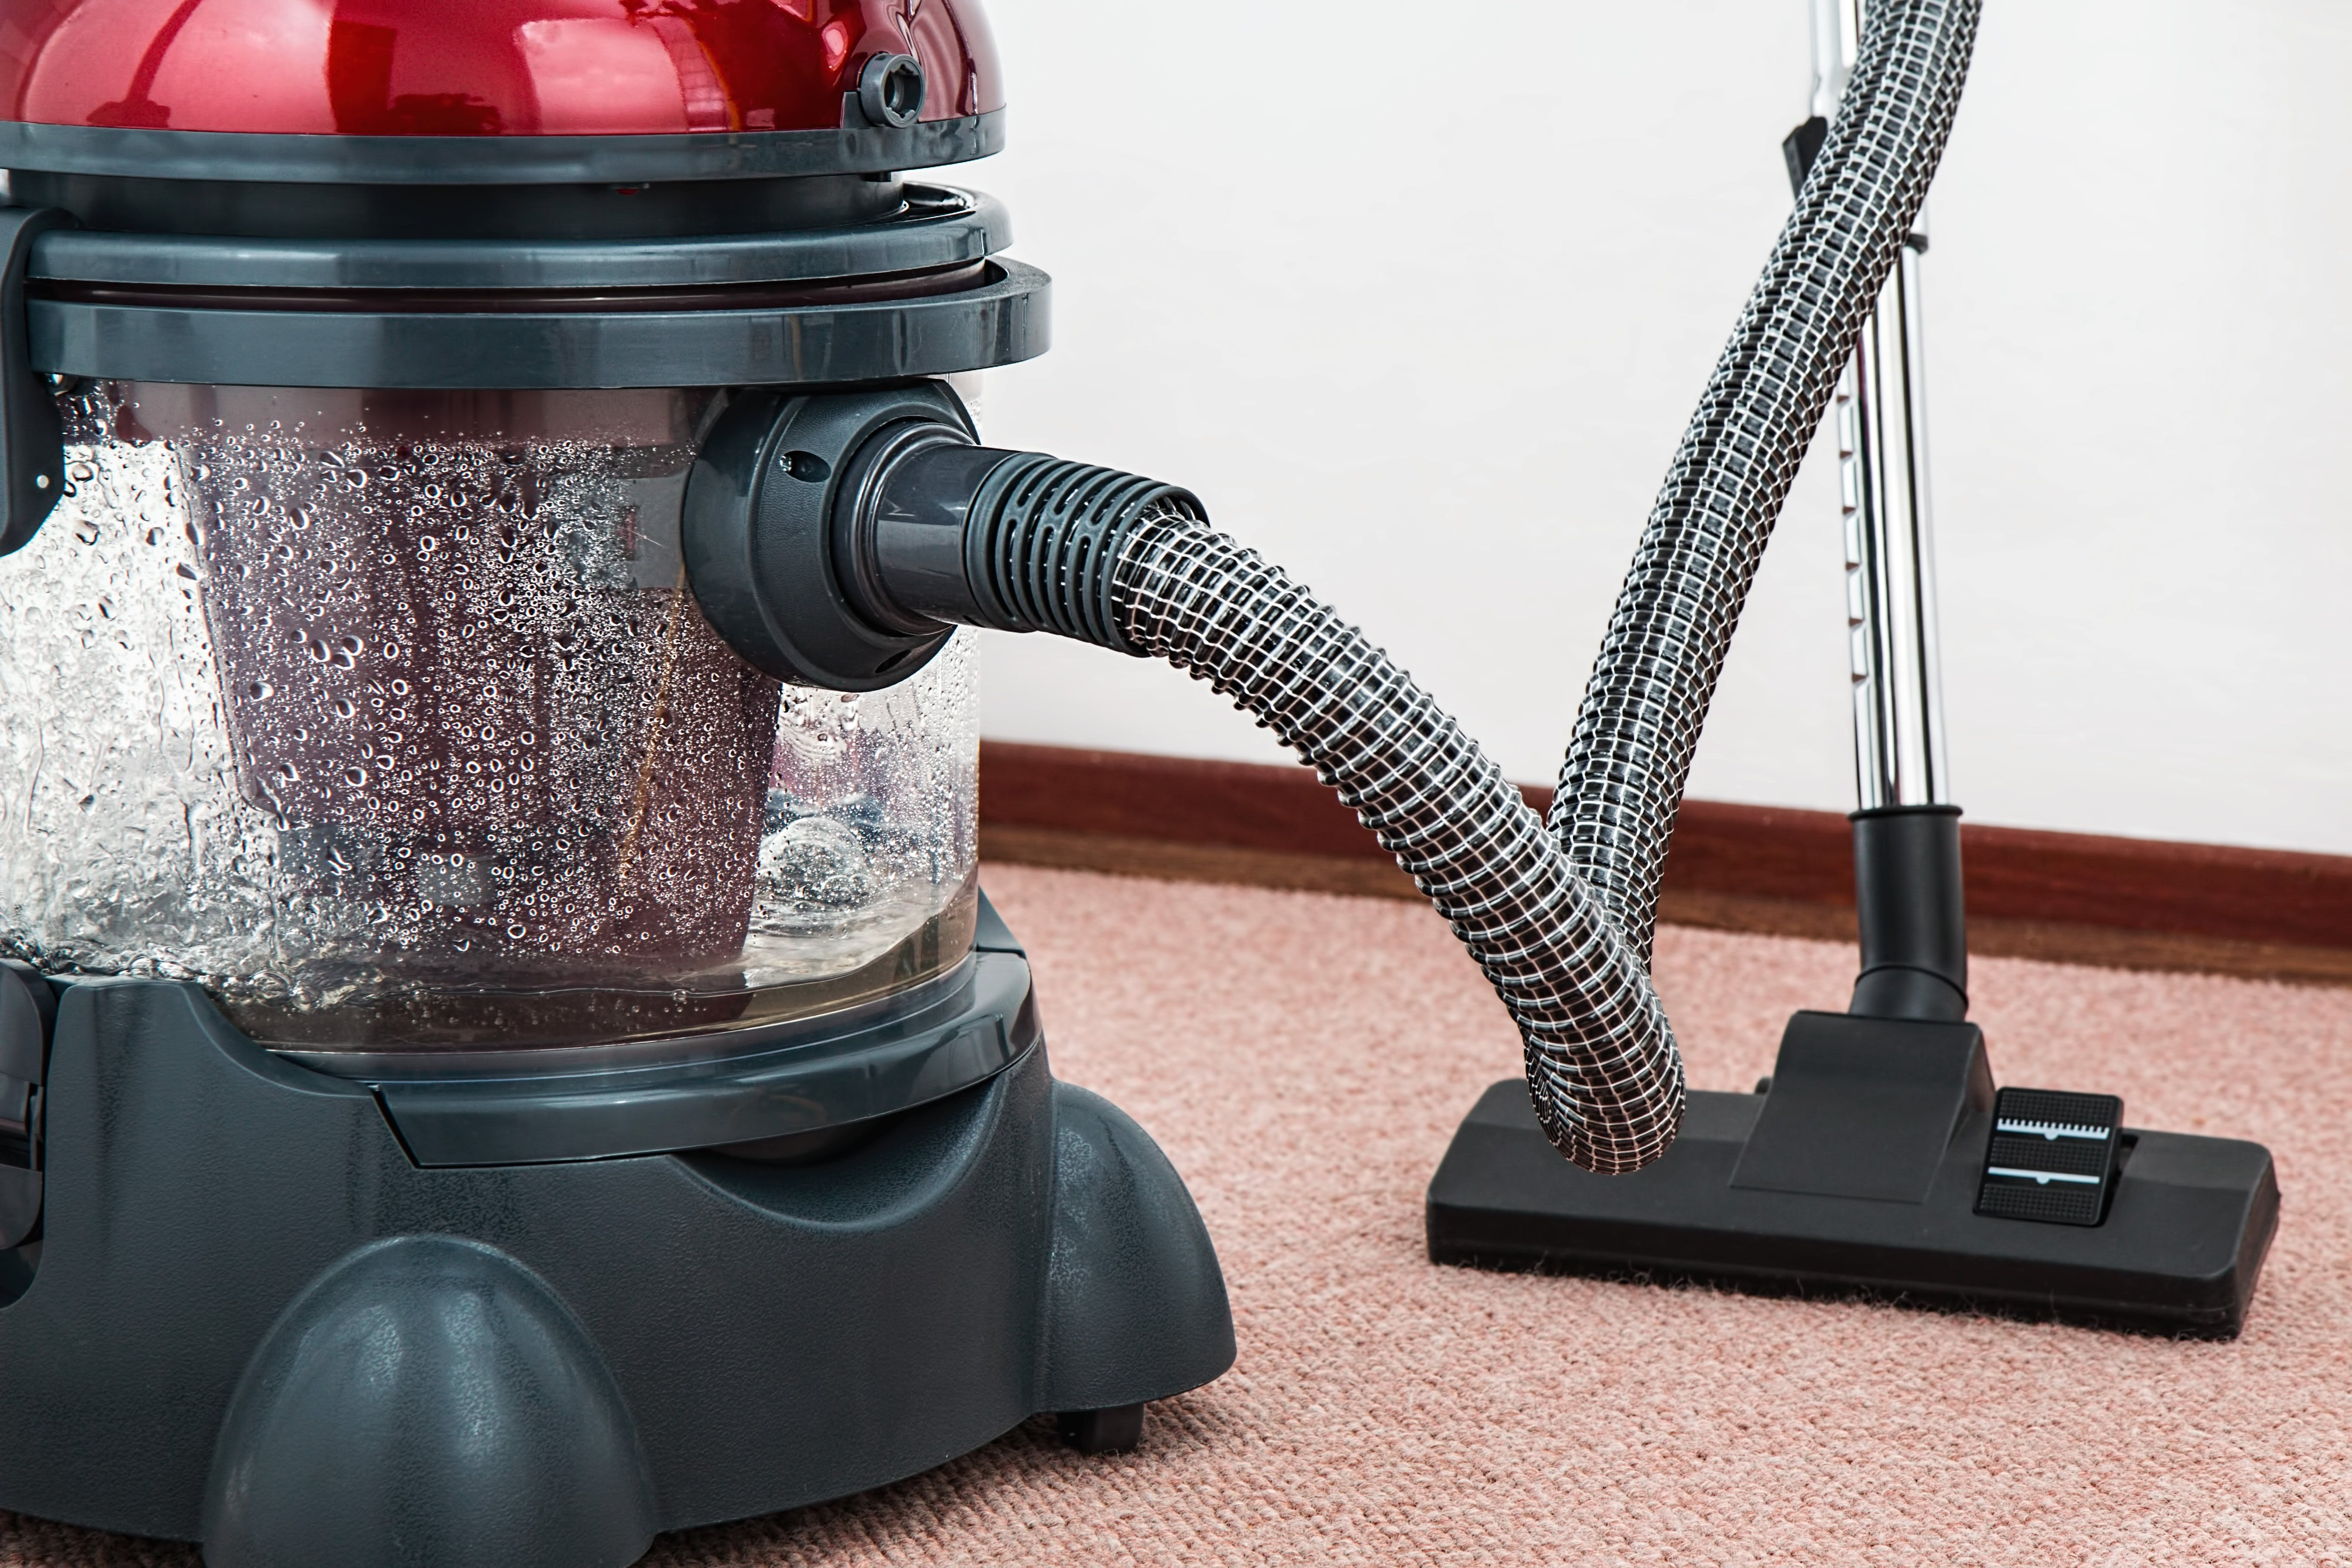 Black and Red Canister Vacuum Cleaner on Floor